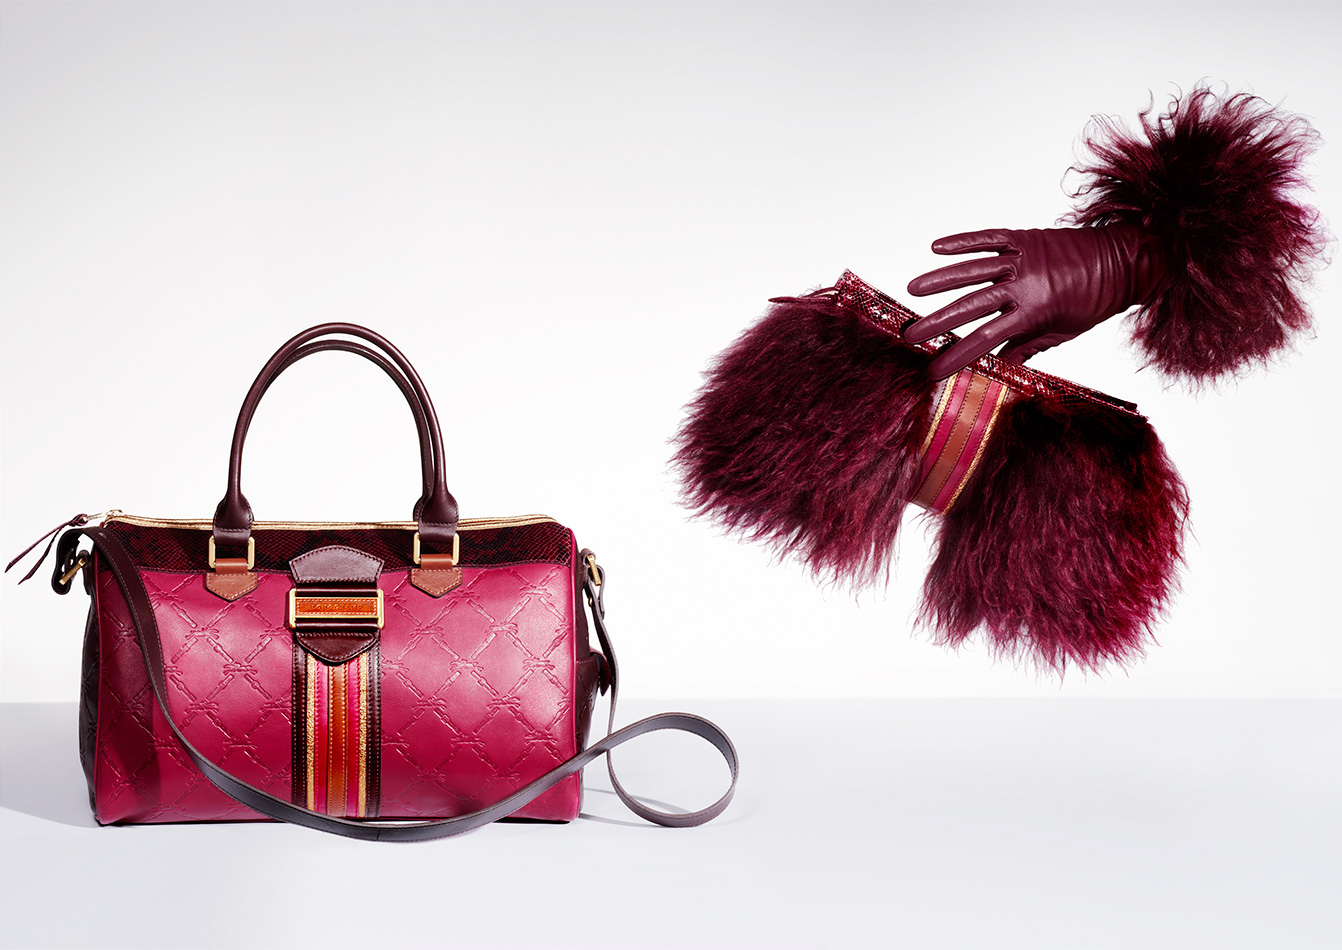 LONGCHAMP-WINTER2012-13